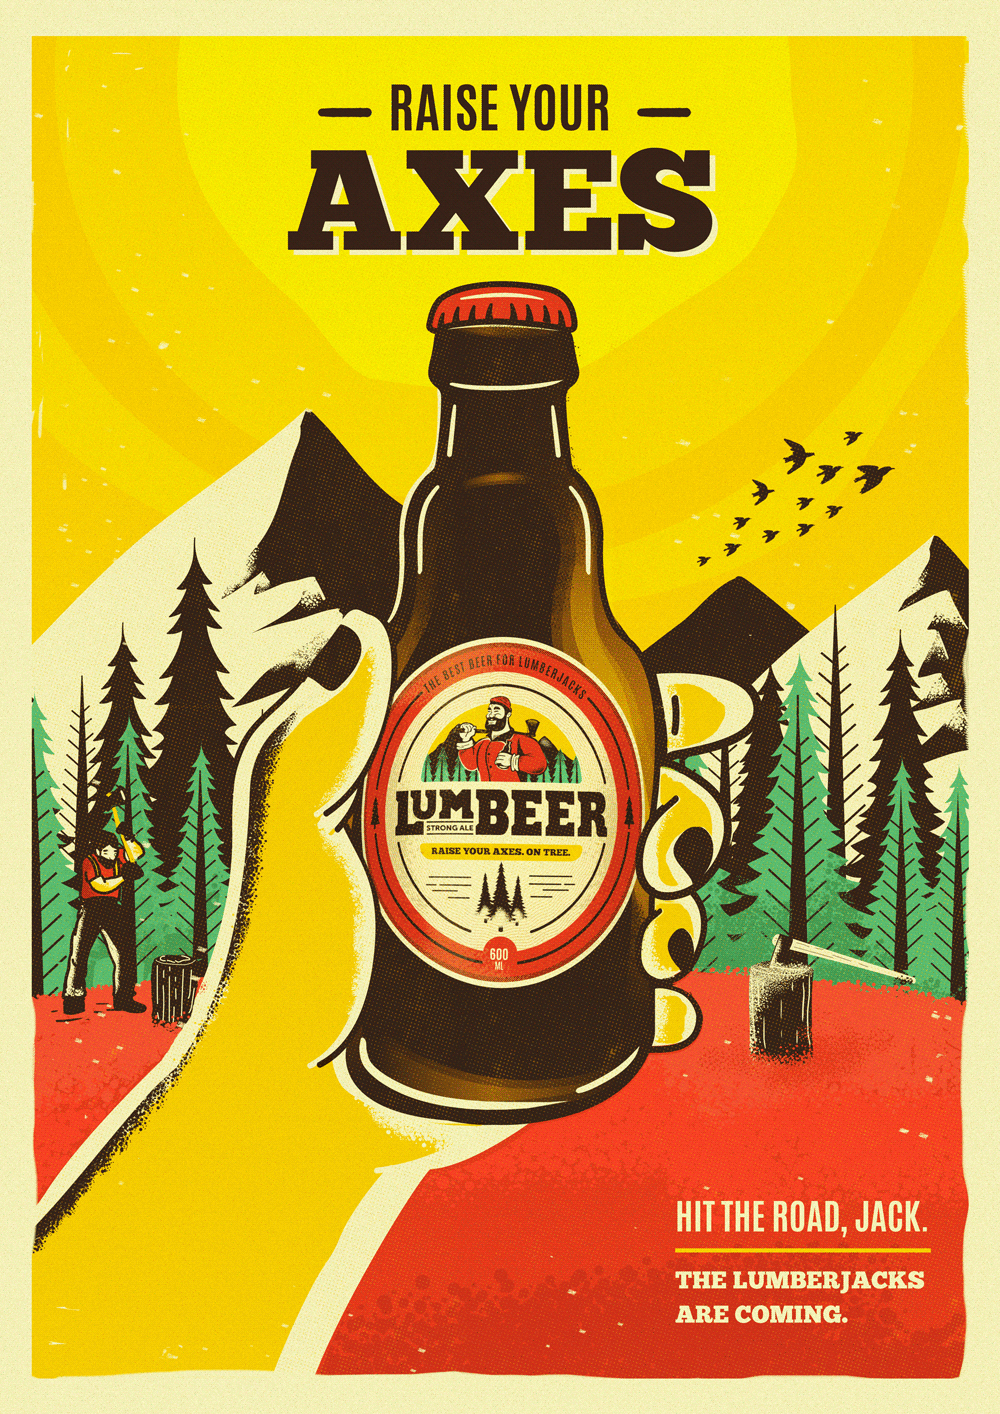 poster_lumbeer_completo-2